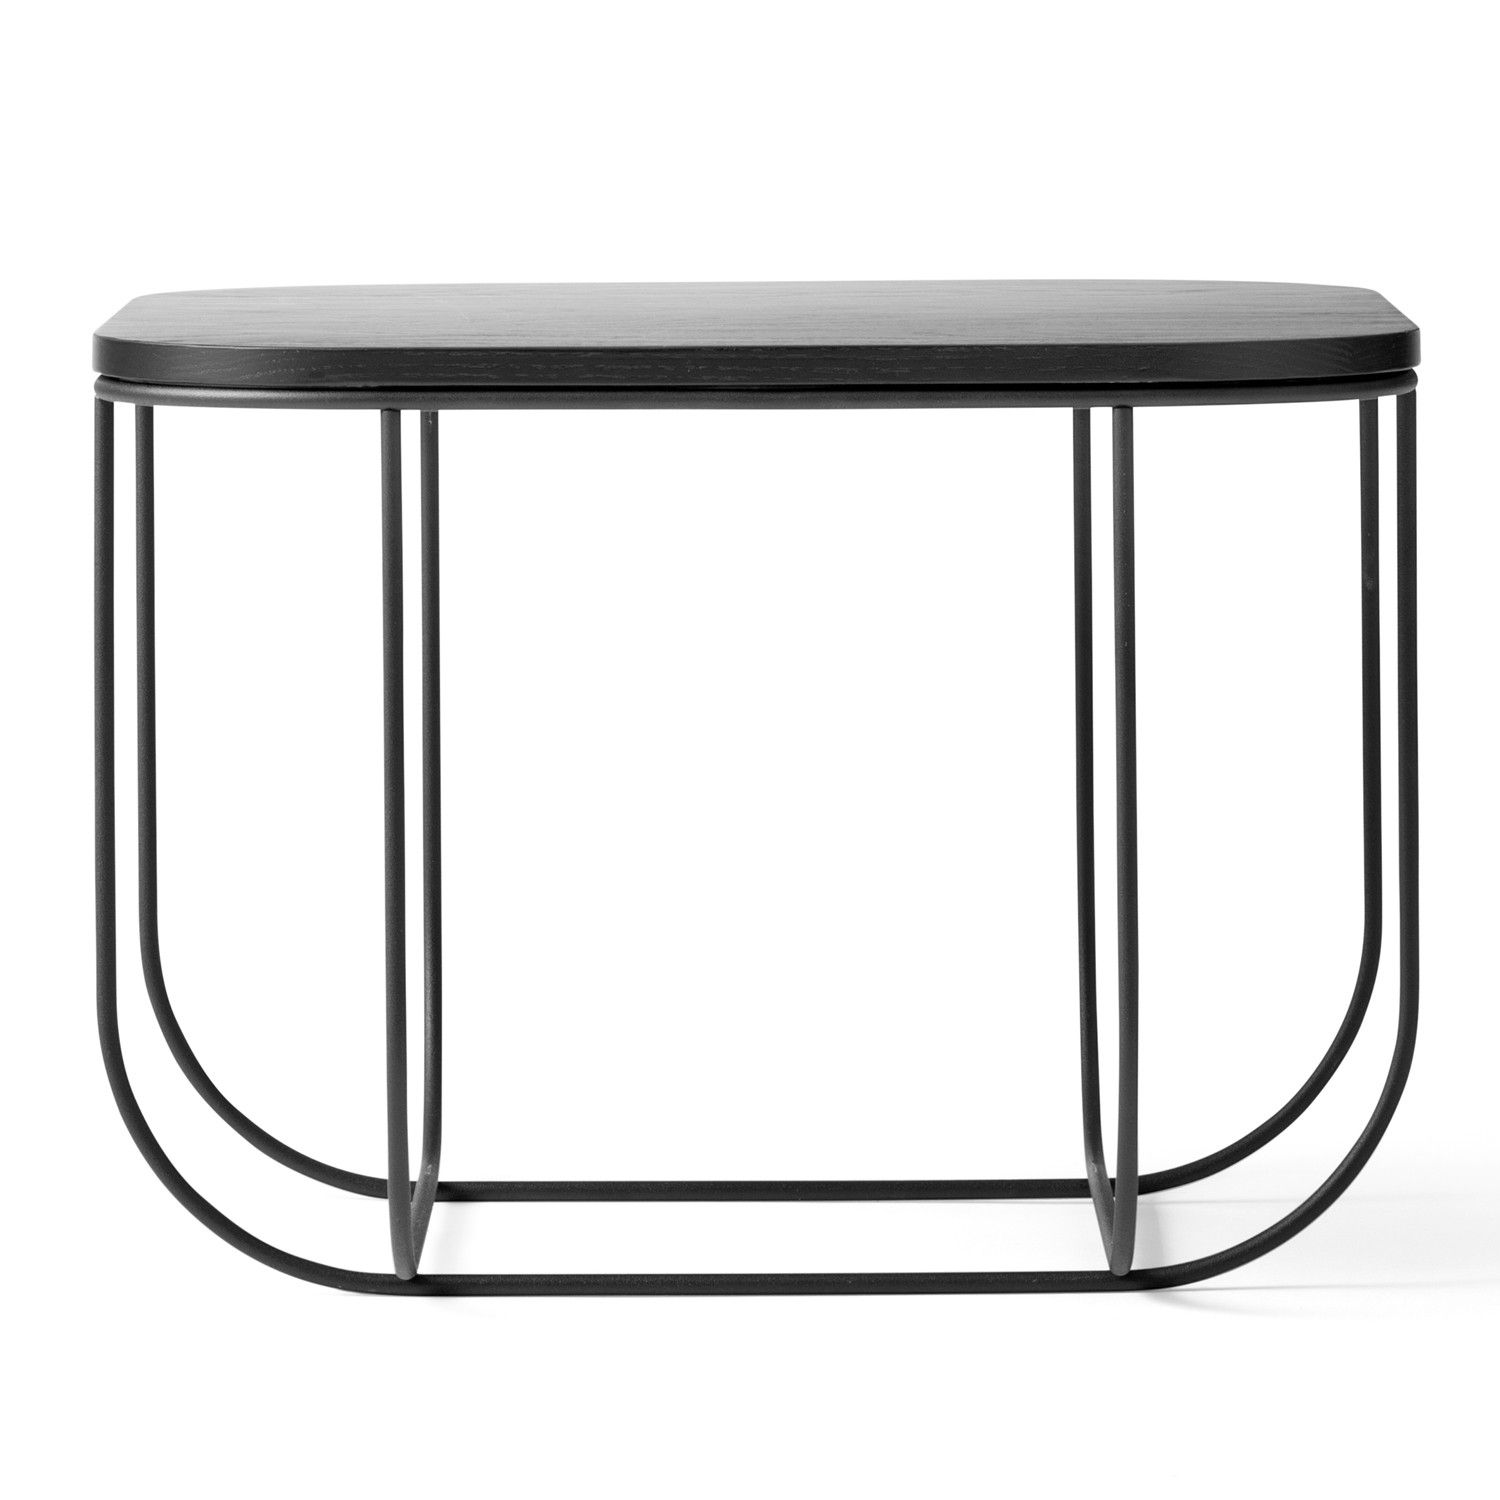 Three Posts Gillett Coffee Table Reviews Wayfair Living Room Styles Coffee Table Center Table [ 1400 x 1400 Pixel ]